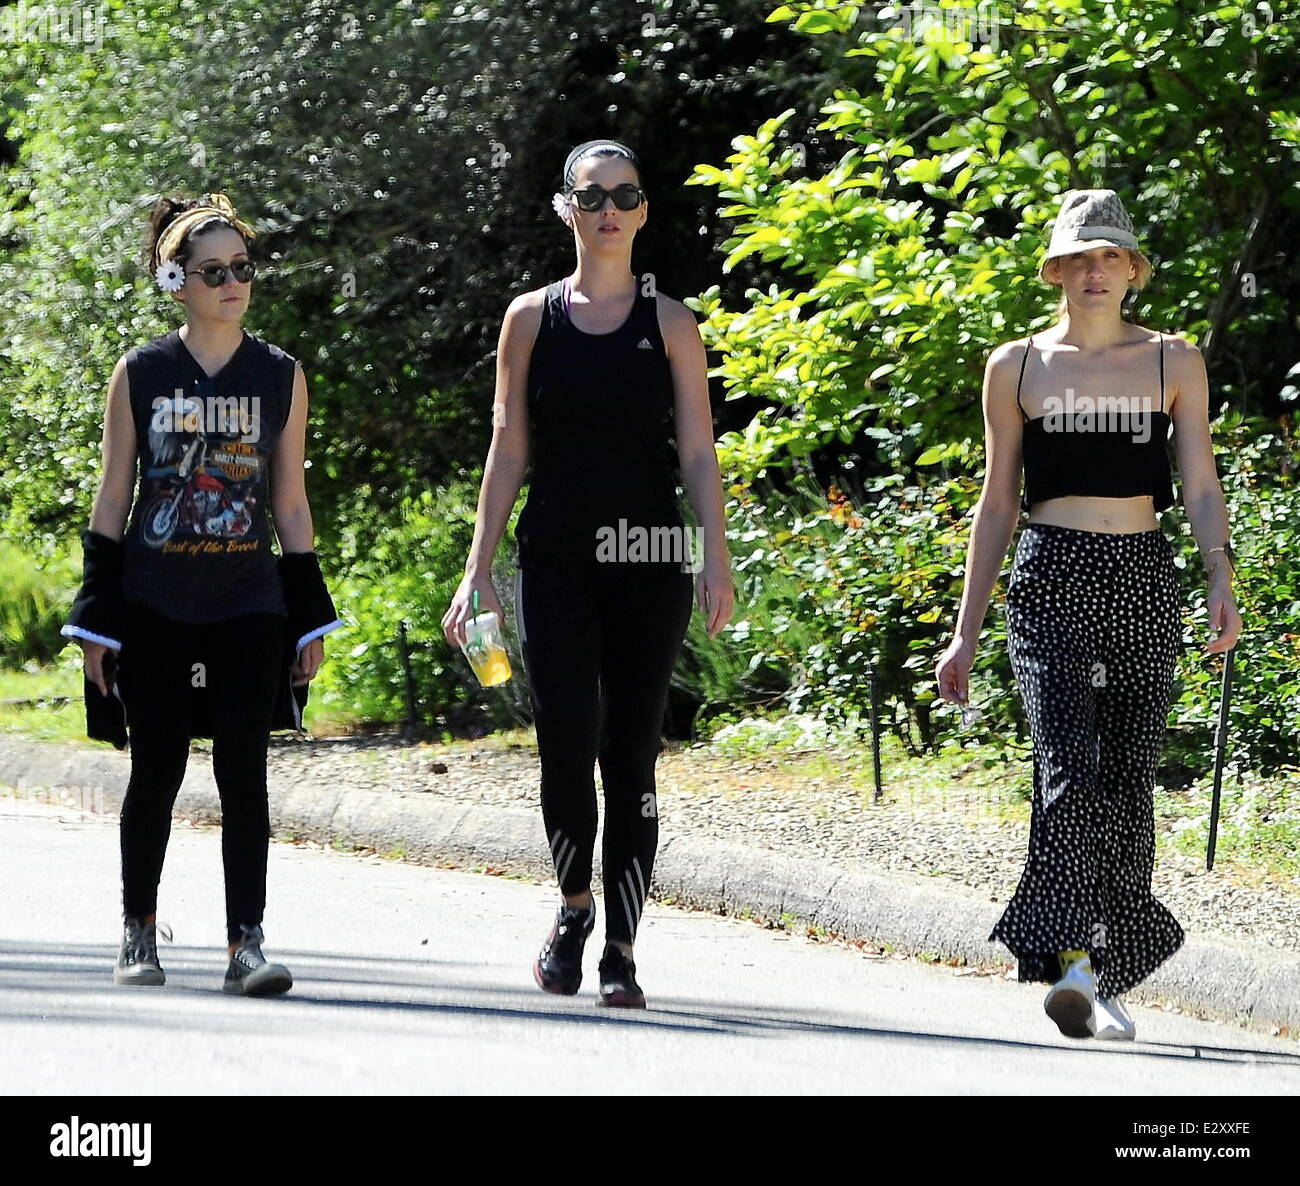 Katy Perry bumps into 'Glee' star Jane Lynch, while hiking with friends on a trail in Studio City. Despite - Stock Image